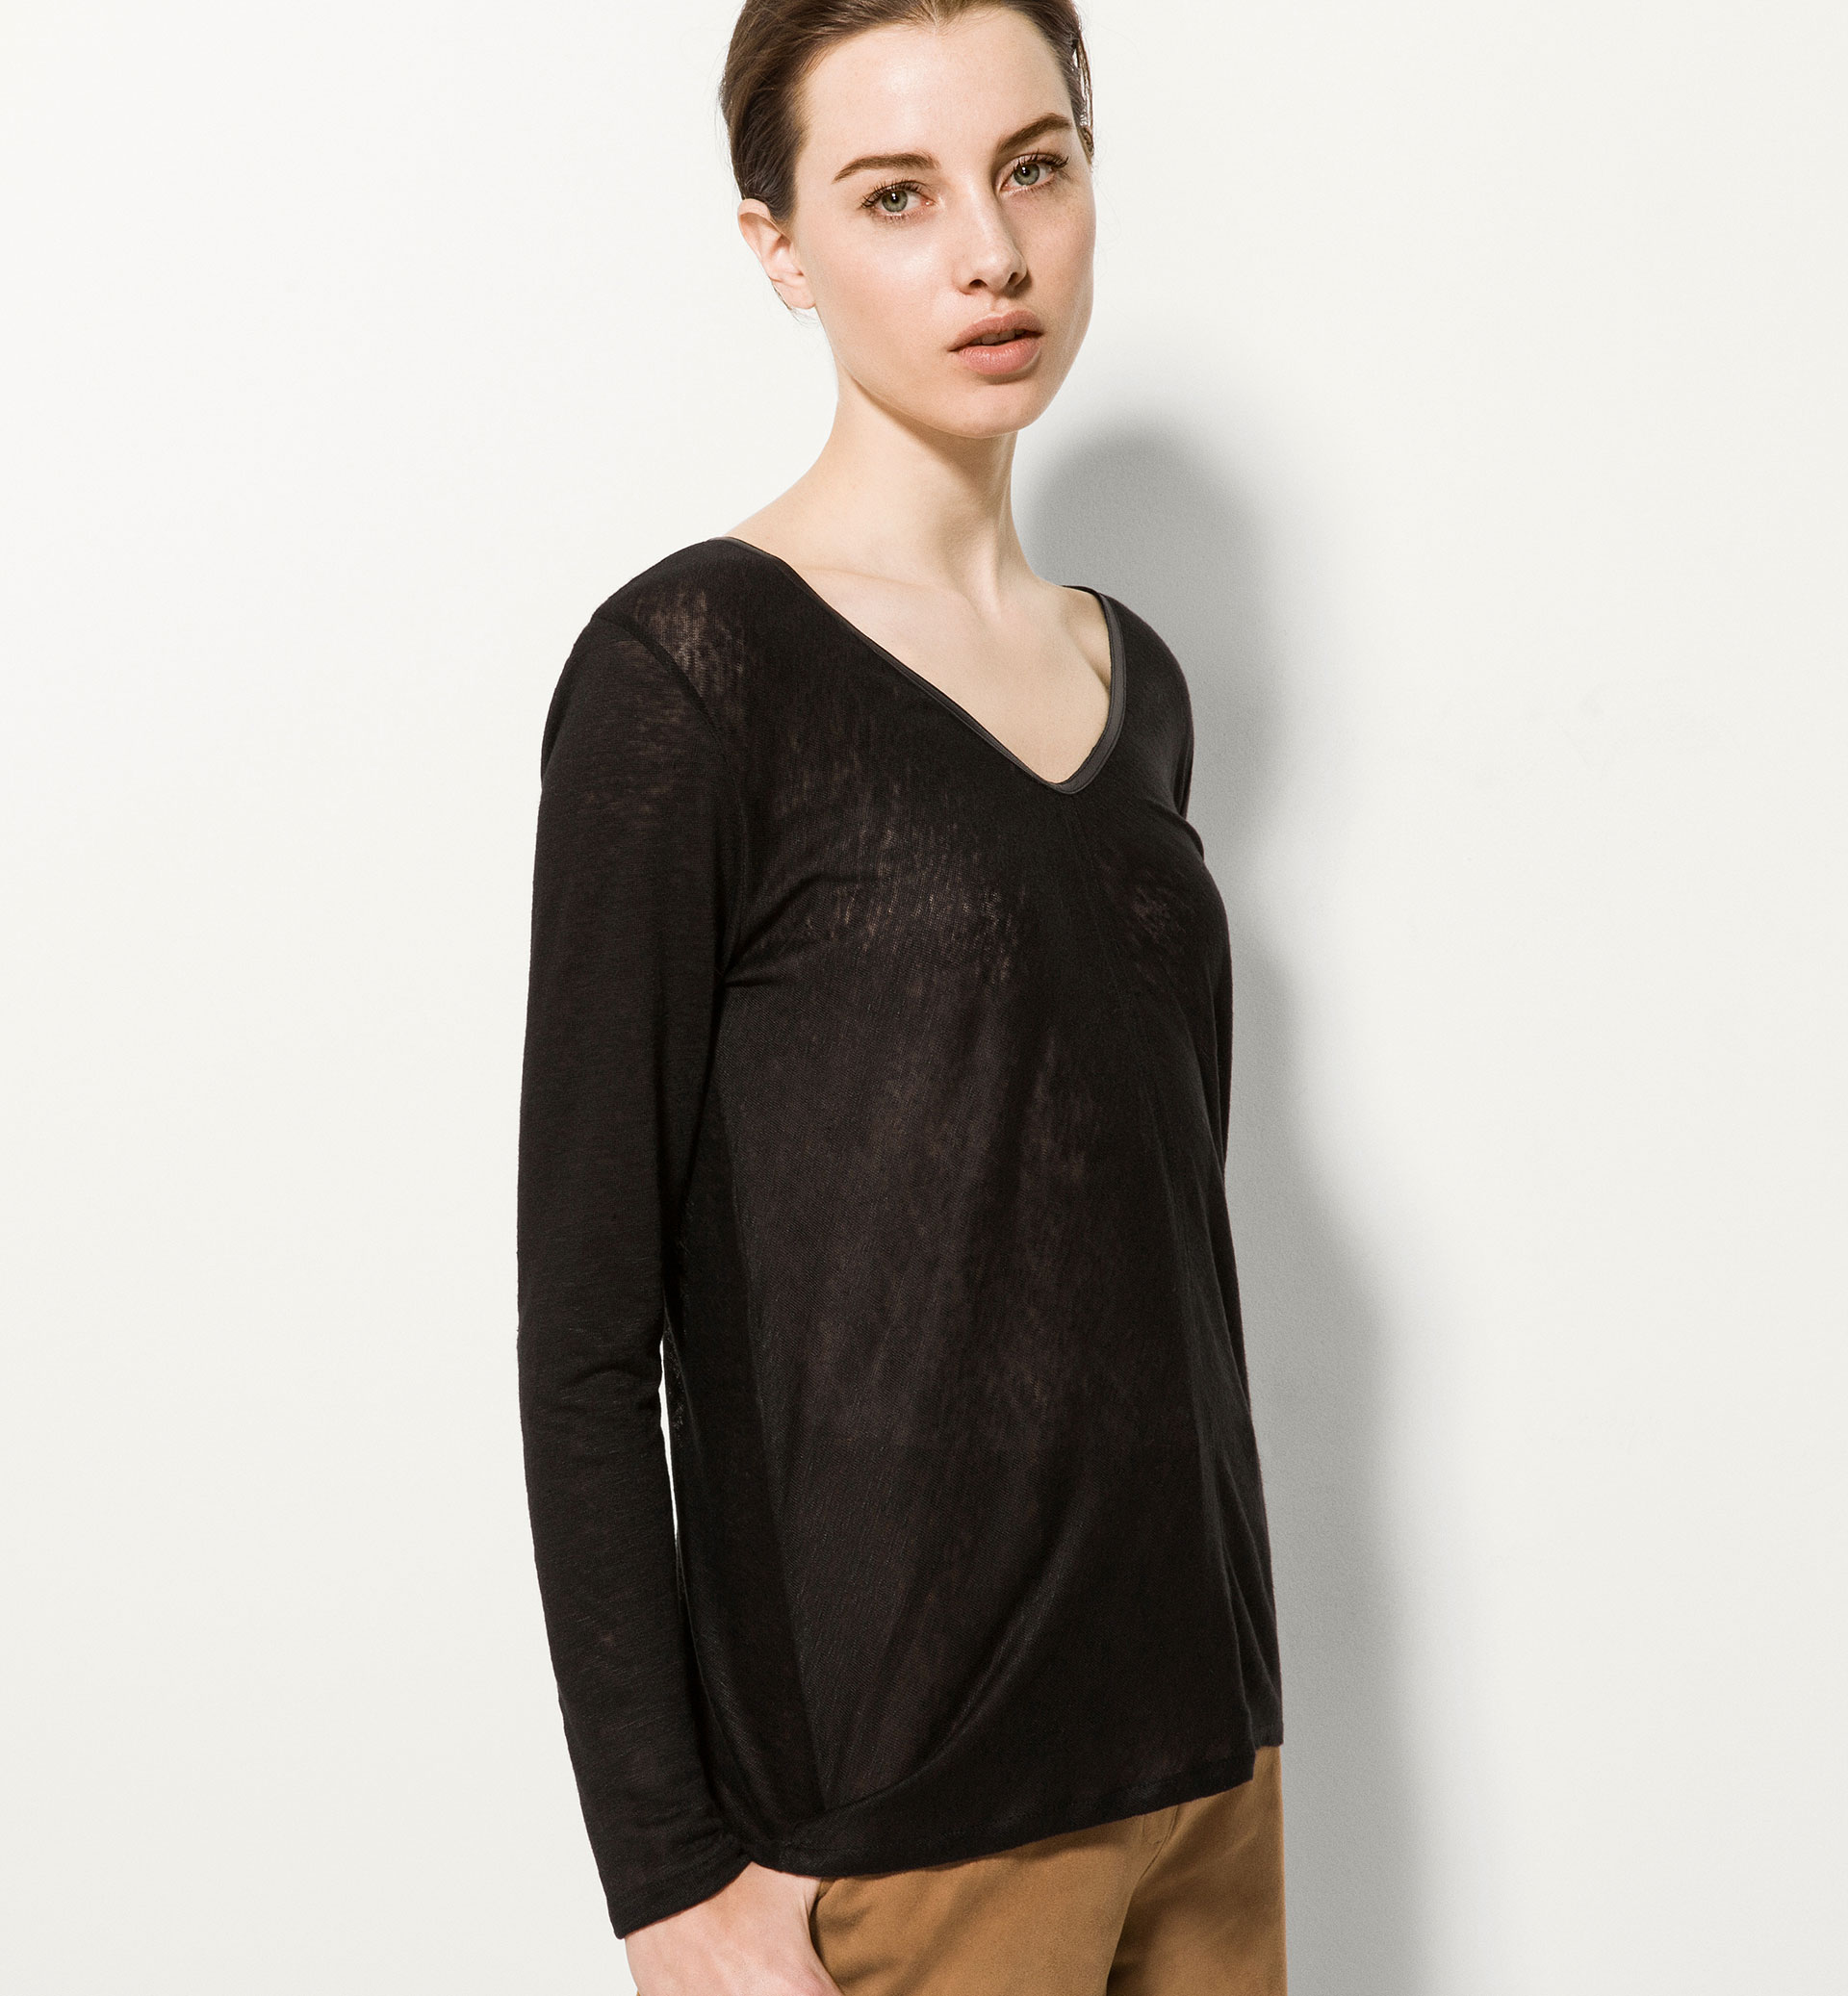 LINEN T-SHIRT WITH LEATHER NECKLINE